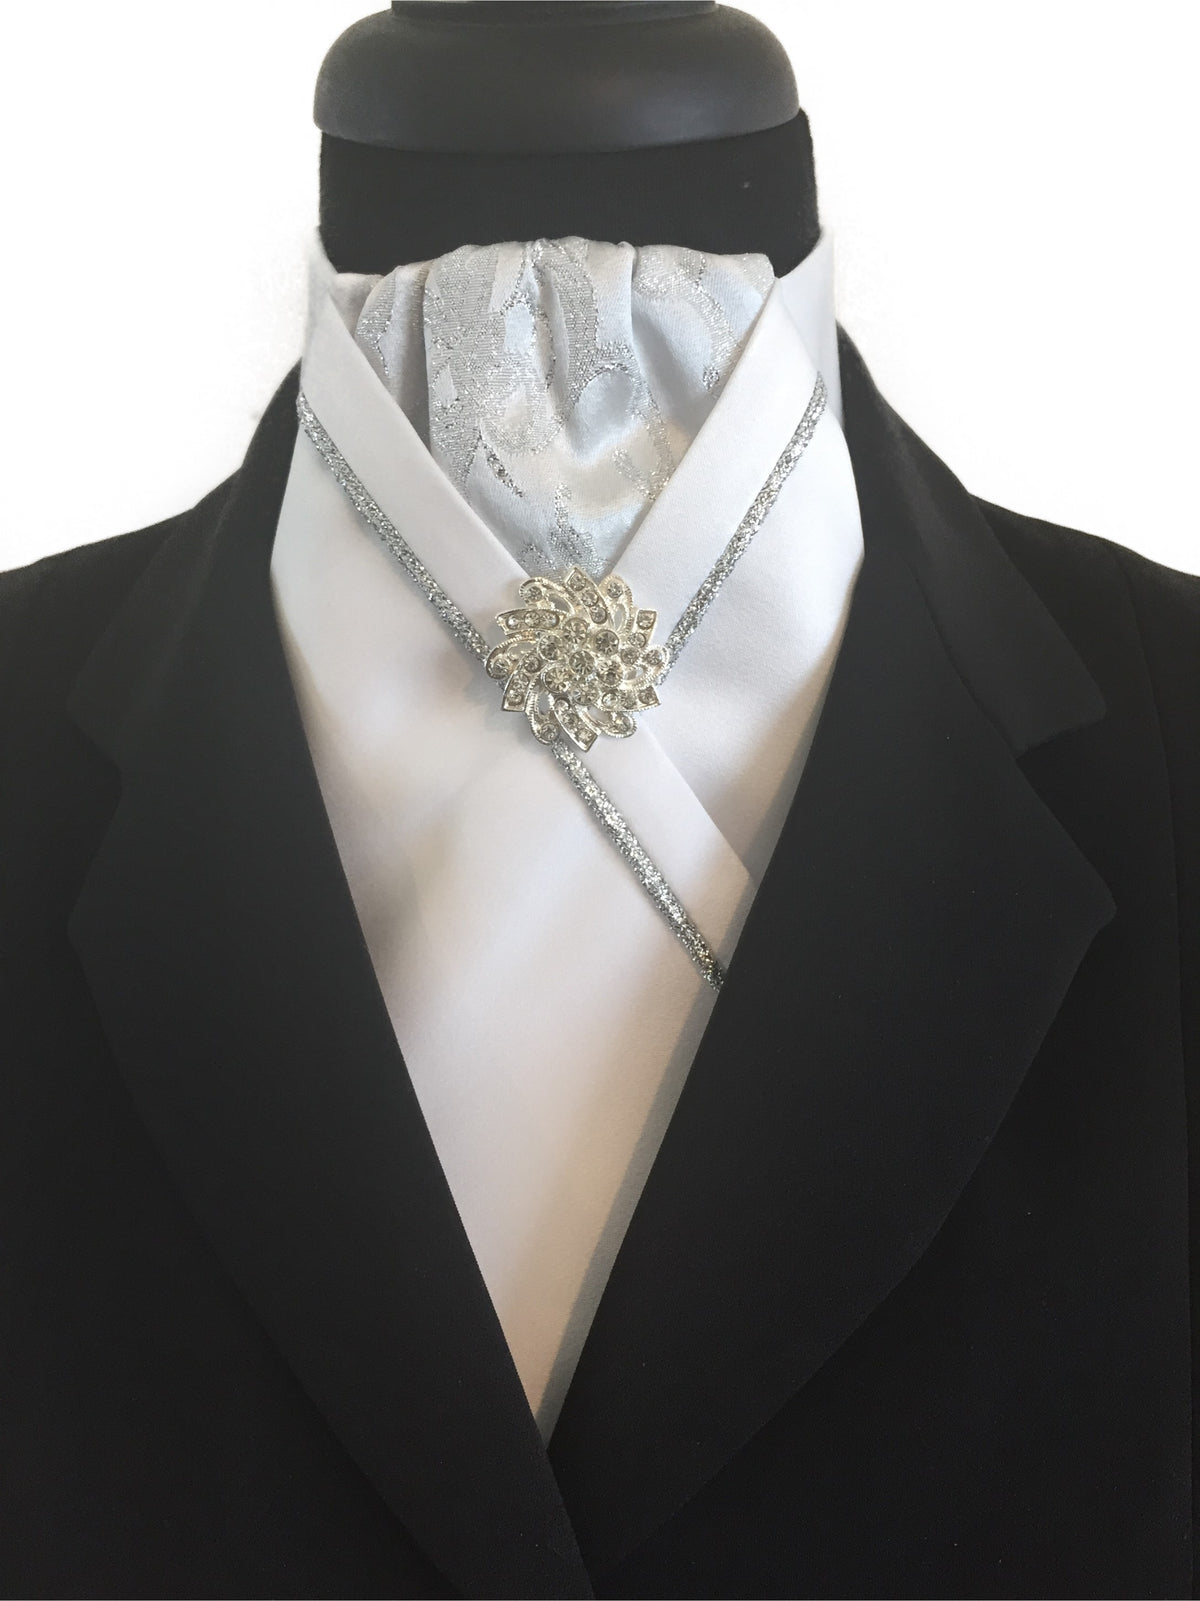 White Stock Tie with Silver Brocade and Piping